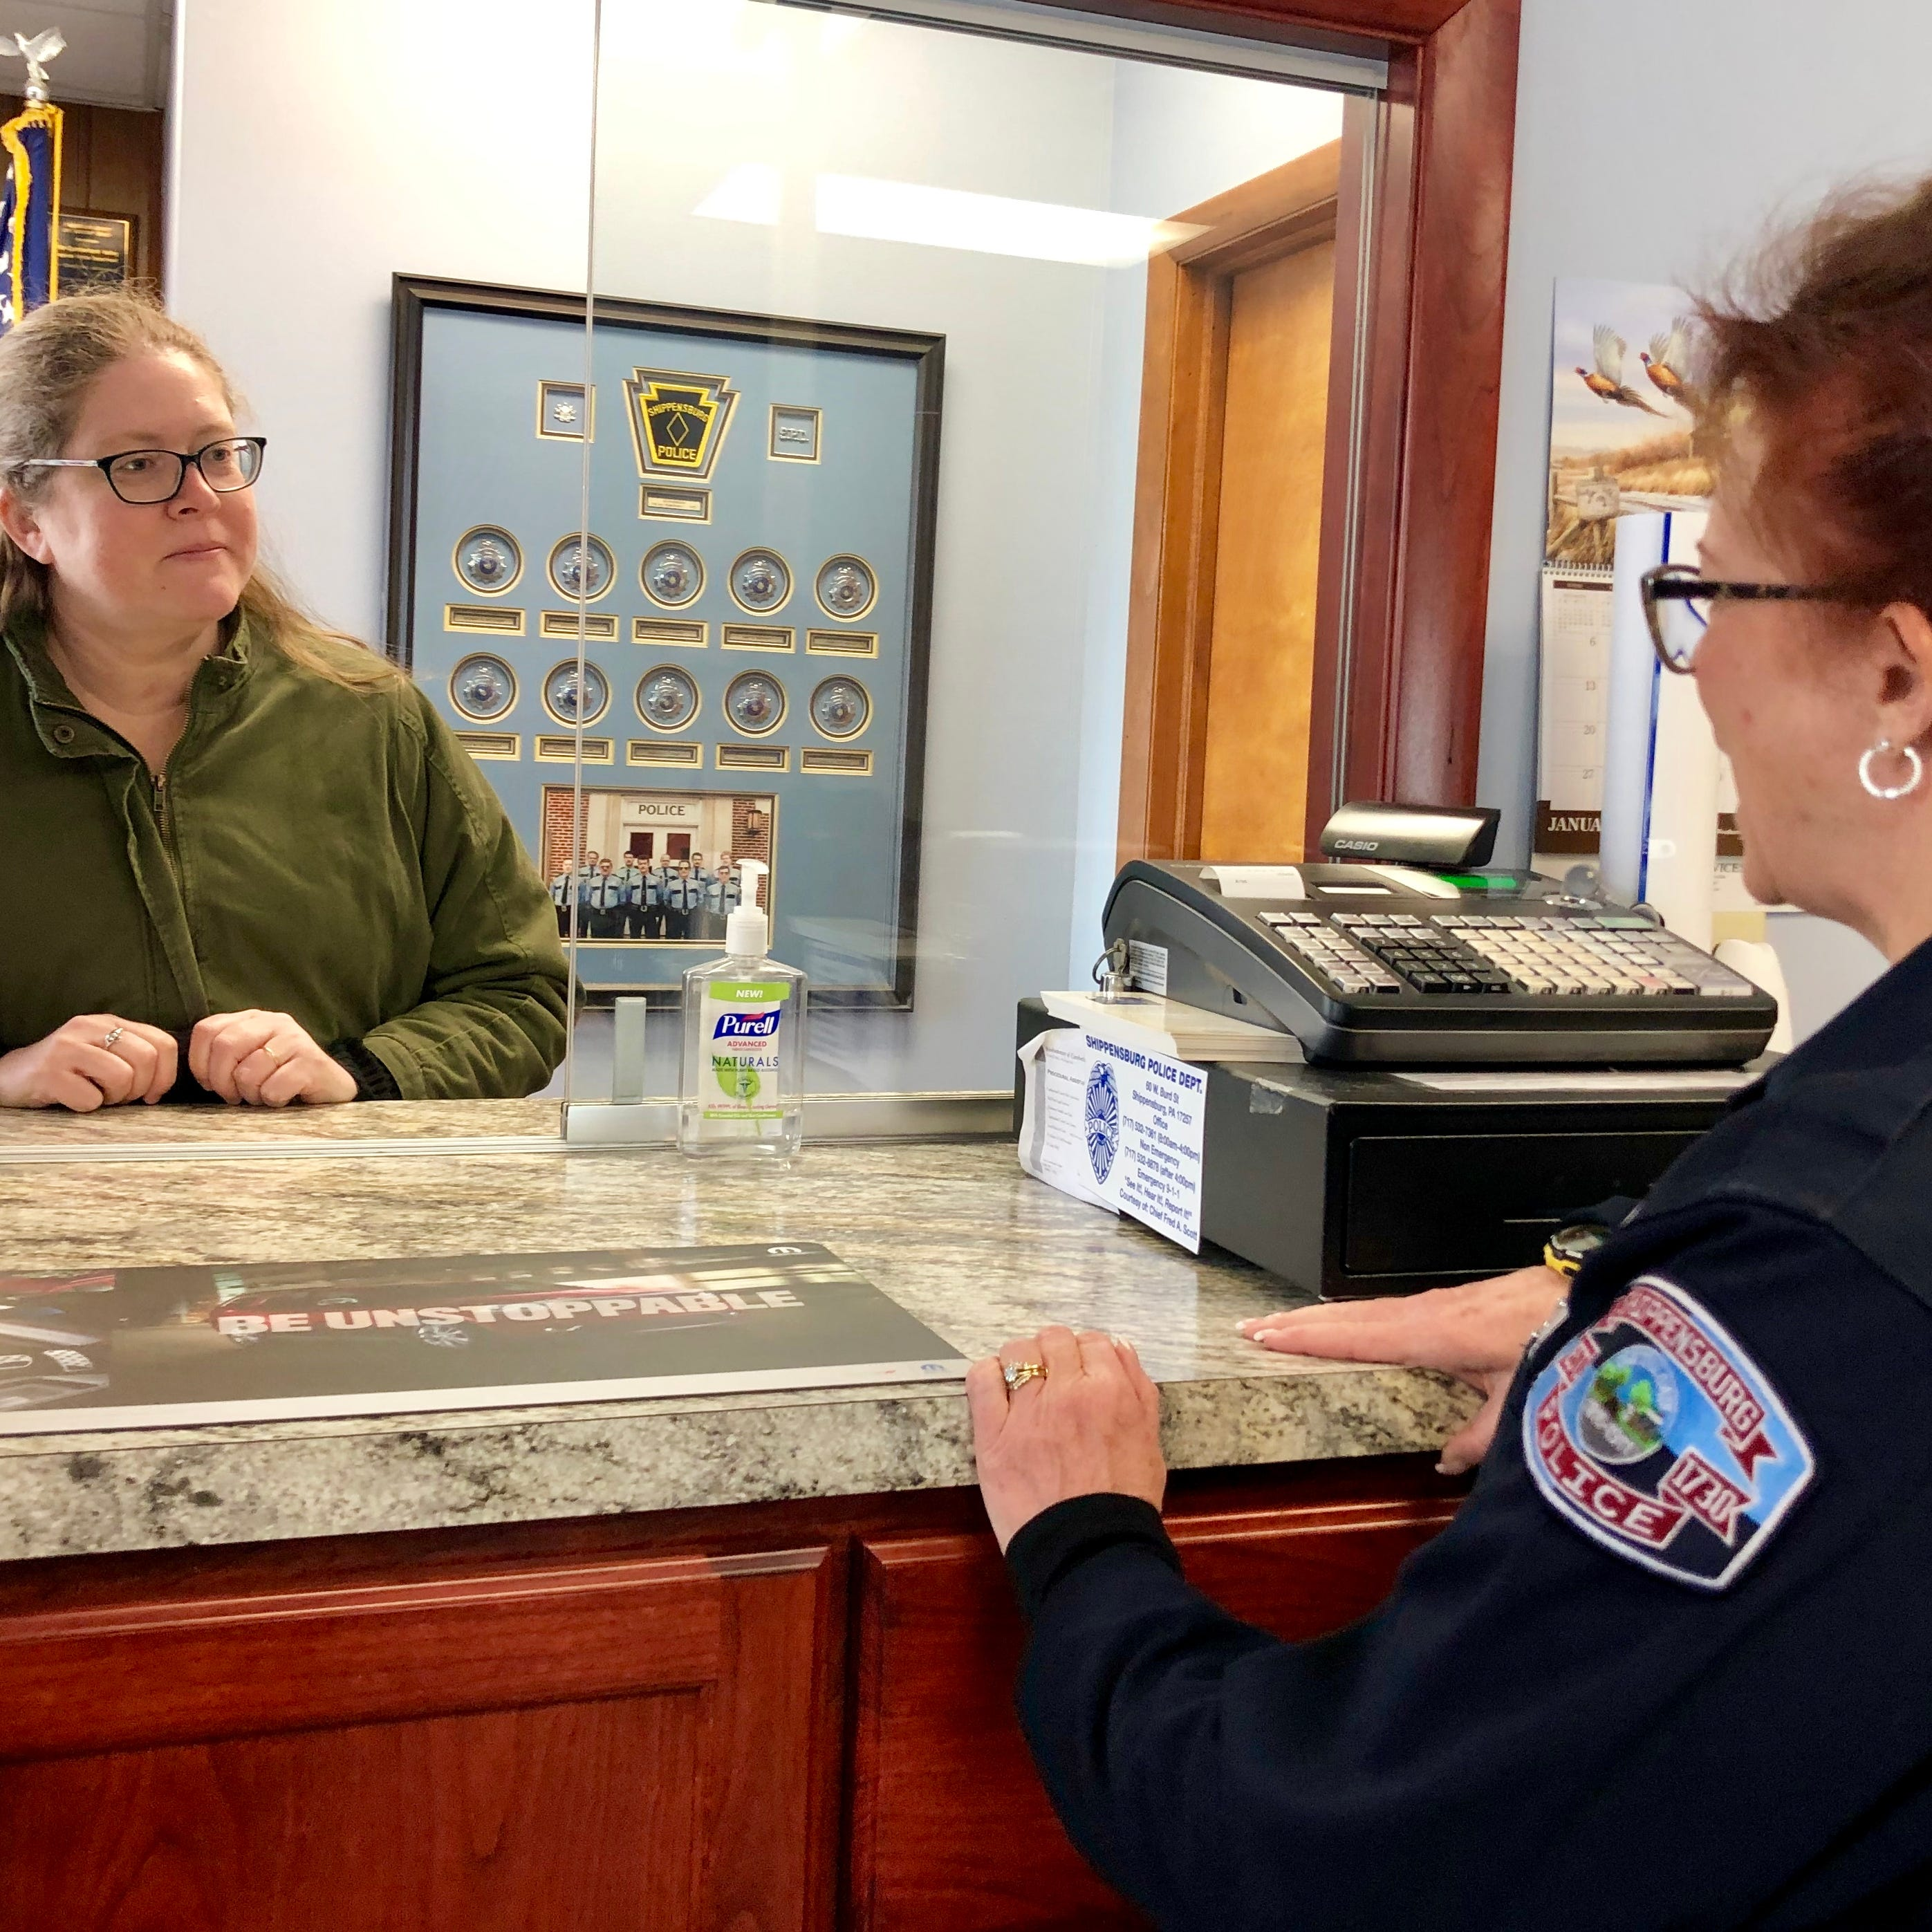 For Franklin County's first female police chief, gender plays limited role on the job